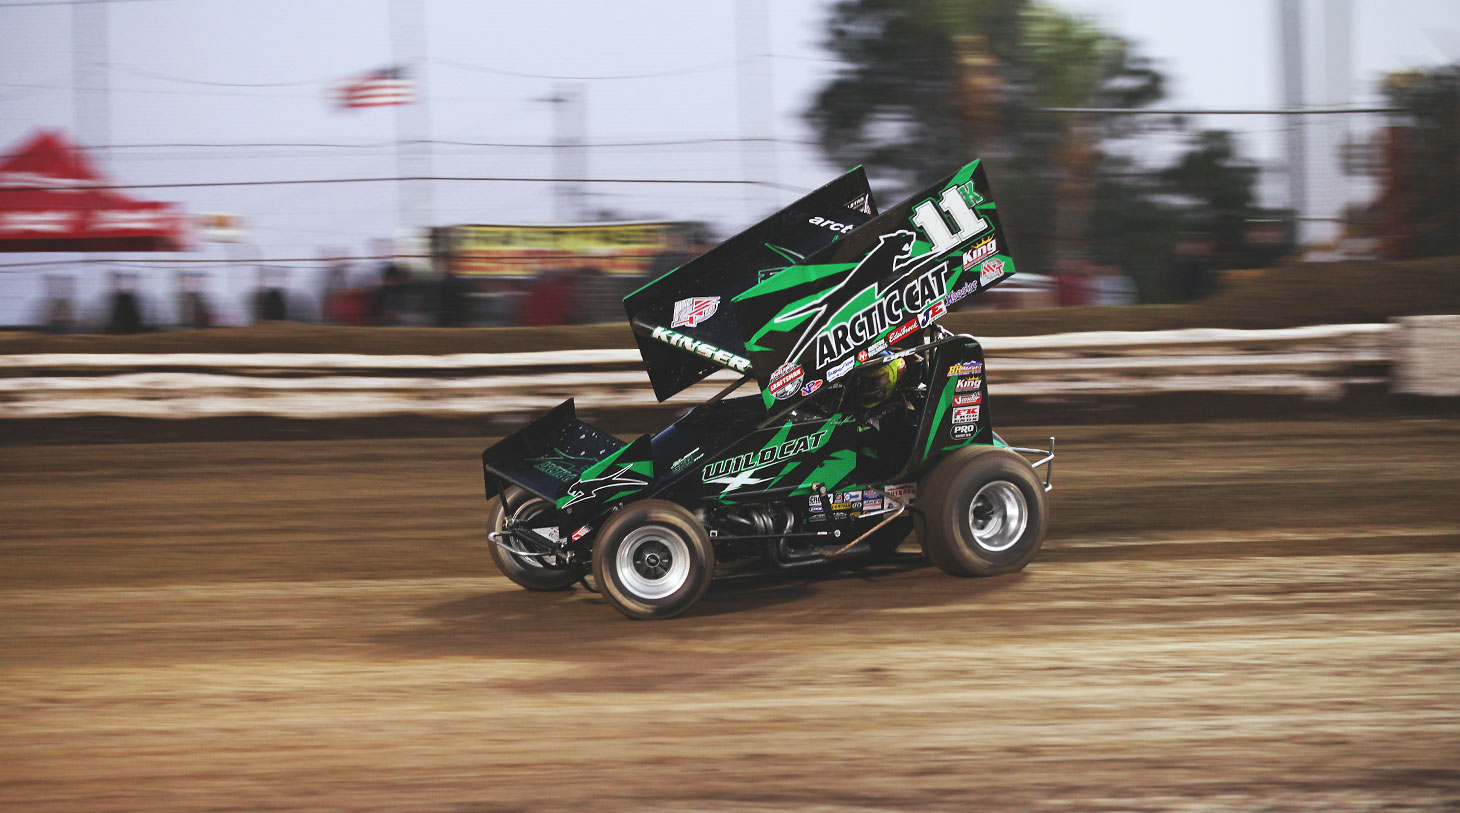 Kraig Kinser flies through turn 1 at Volusia, Florida for The 2016 DIRTcar Nationals | Photo: Jeffrey Turford